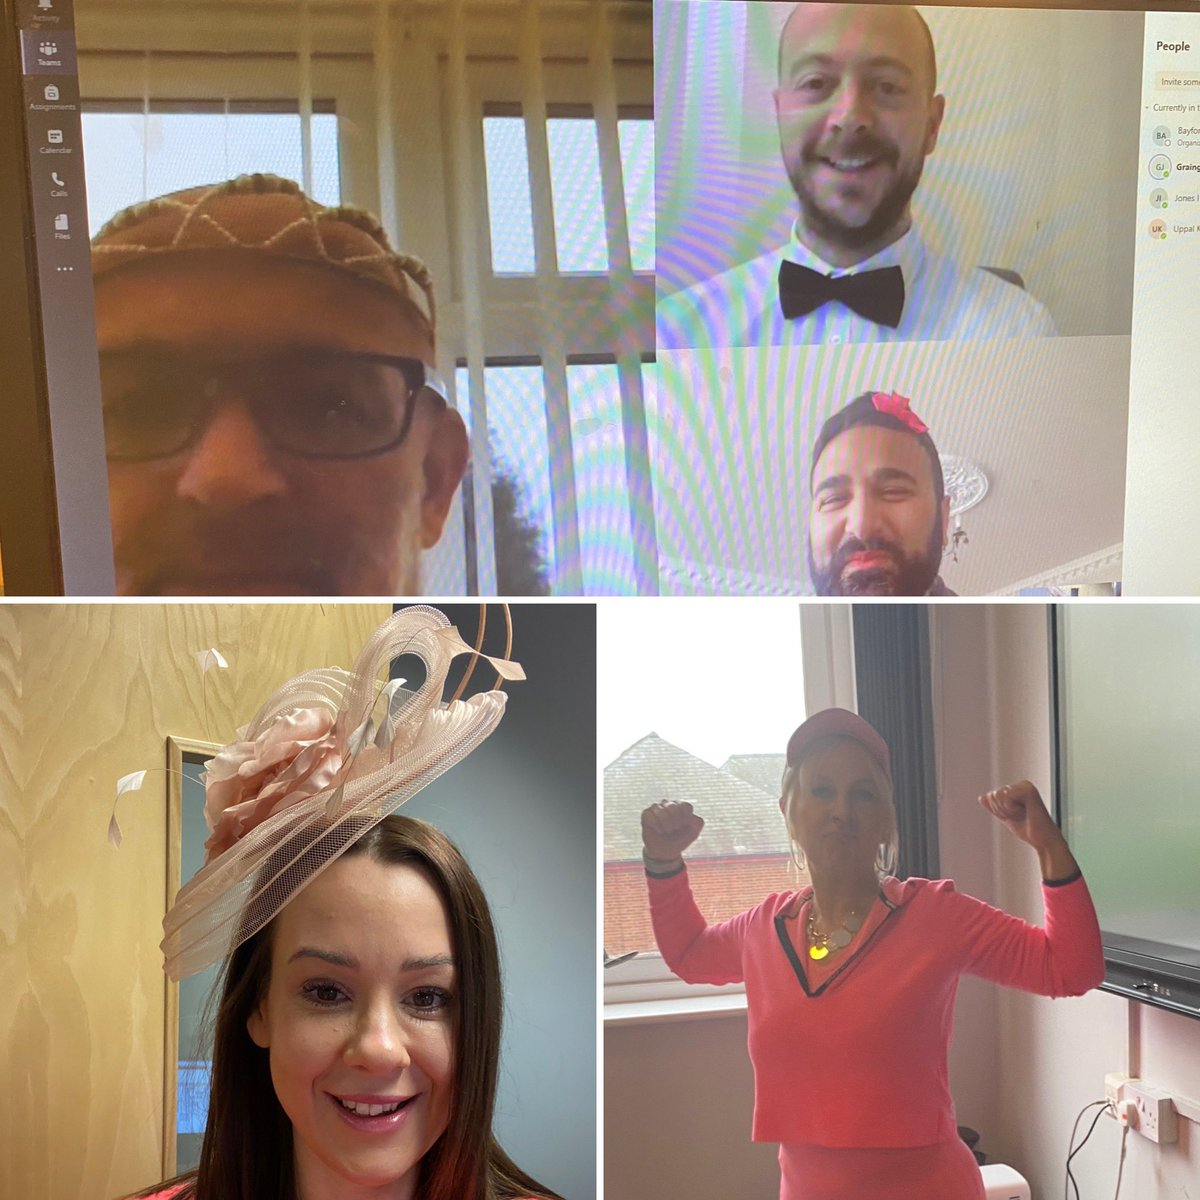 So our SLT themed Teams meetings have continued. This week we've had: props, kitchen utensils and today was dolled up for Fancy Friday. Seeing these faces every morning has certainly made my week in school a lot happier #dreamteam #teamwork #bhamazingpic.twitter.com/IuS3FSD33a